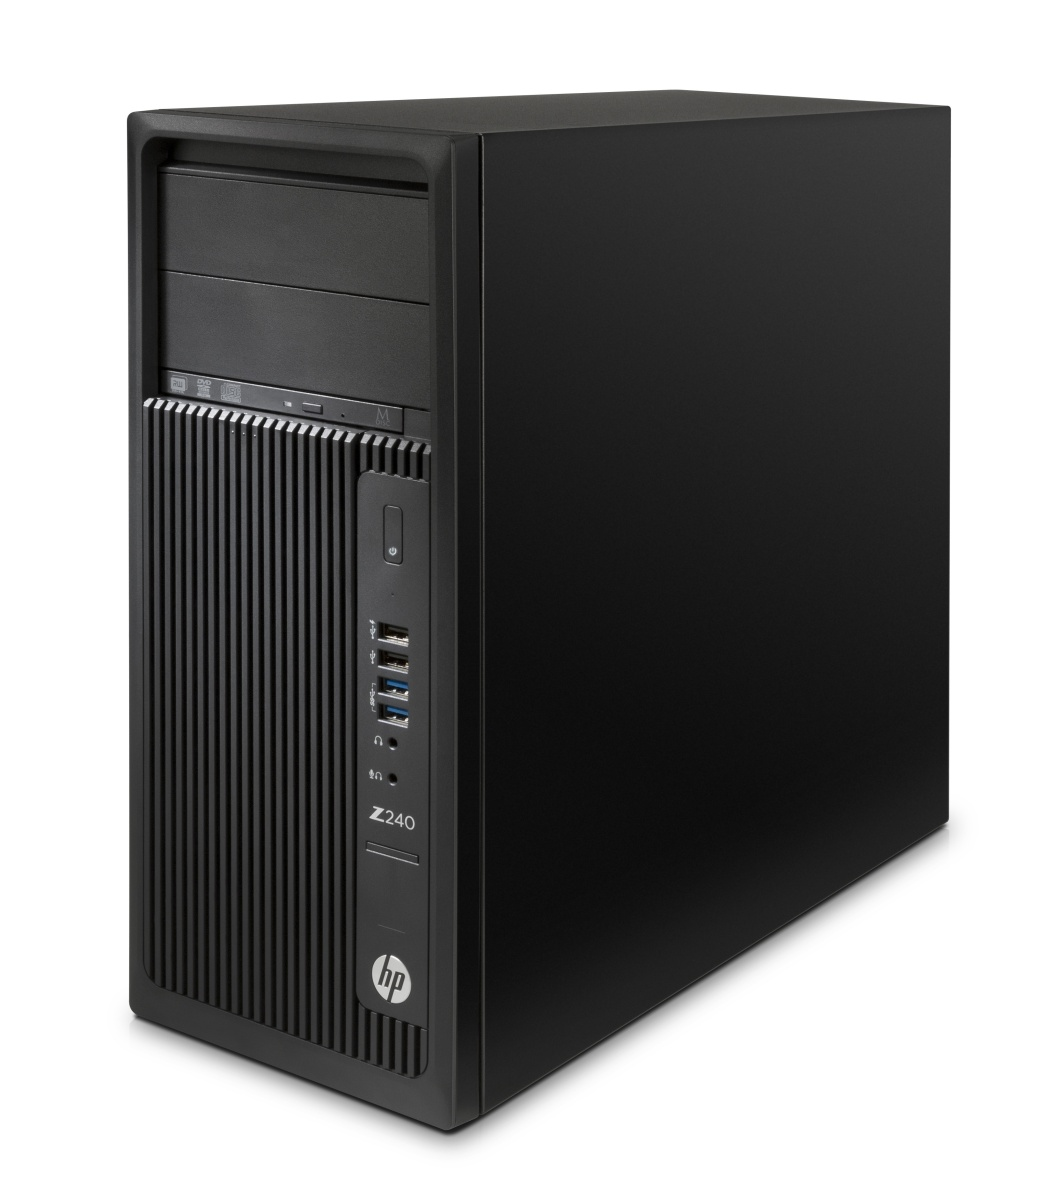 HP Z240 TWR Intel i7-7700/2x8GB DDR4 nECC/Z TurboDrive G2 256GB TLC m.2 + 1TB 3,5'' 7200/Nvidia P2000 5GB/Win 10 Pro